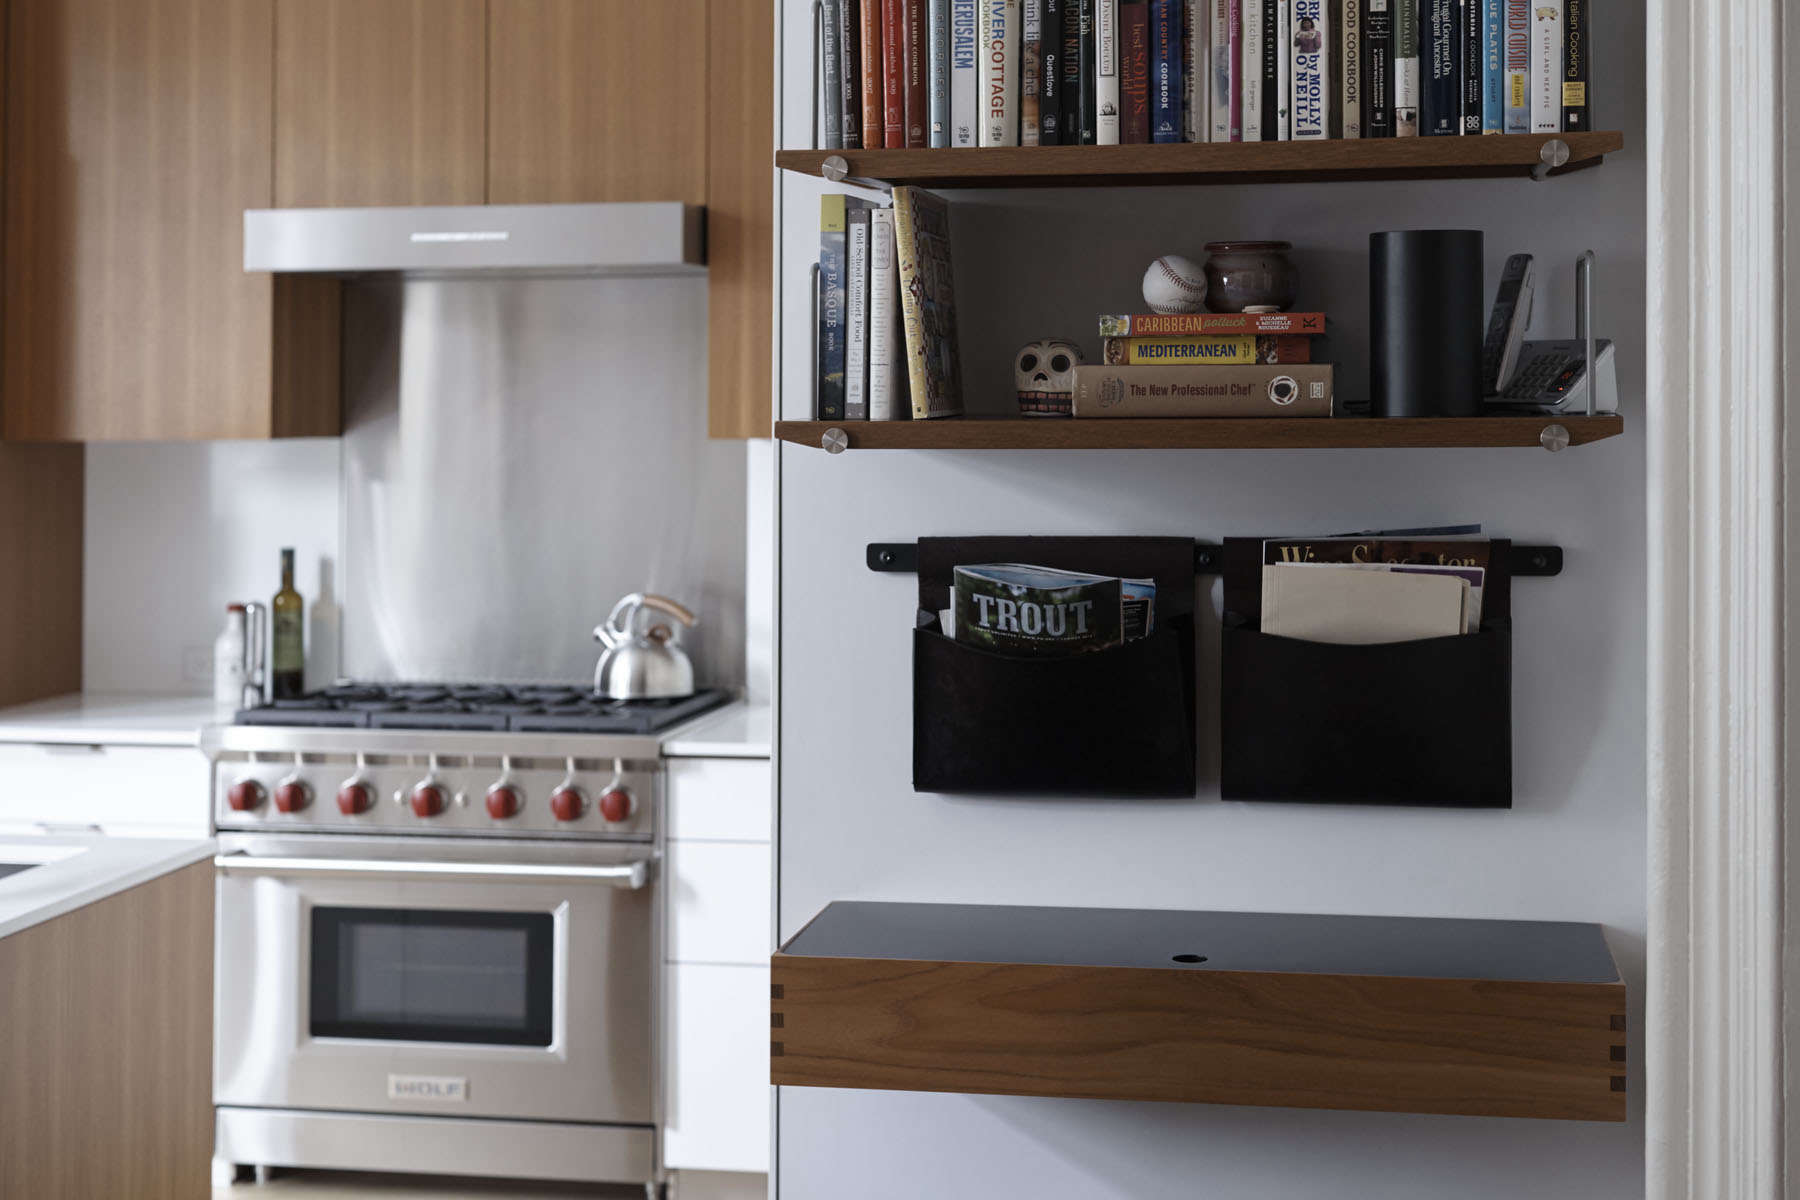 Henrybuilt Opencase shelves, leather hanging pouches, and a wall desk in a Brooklyn kitchen remodel